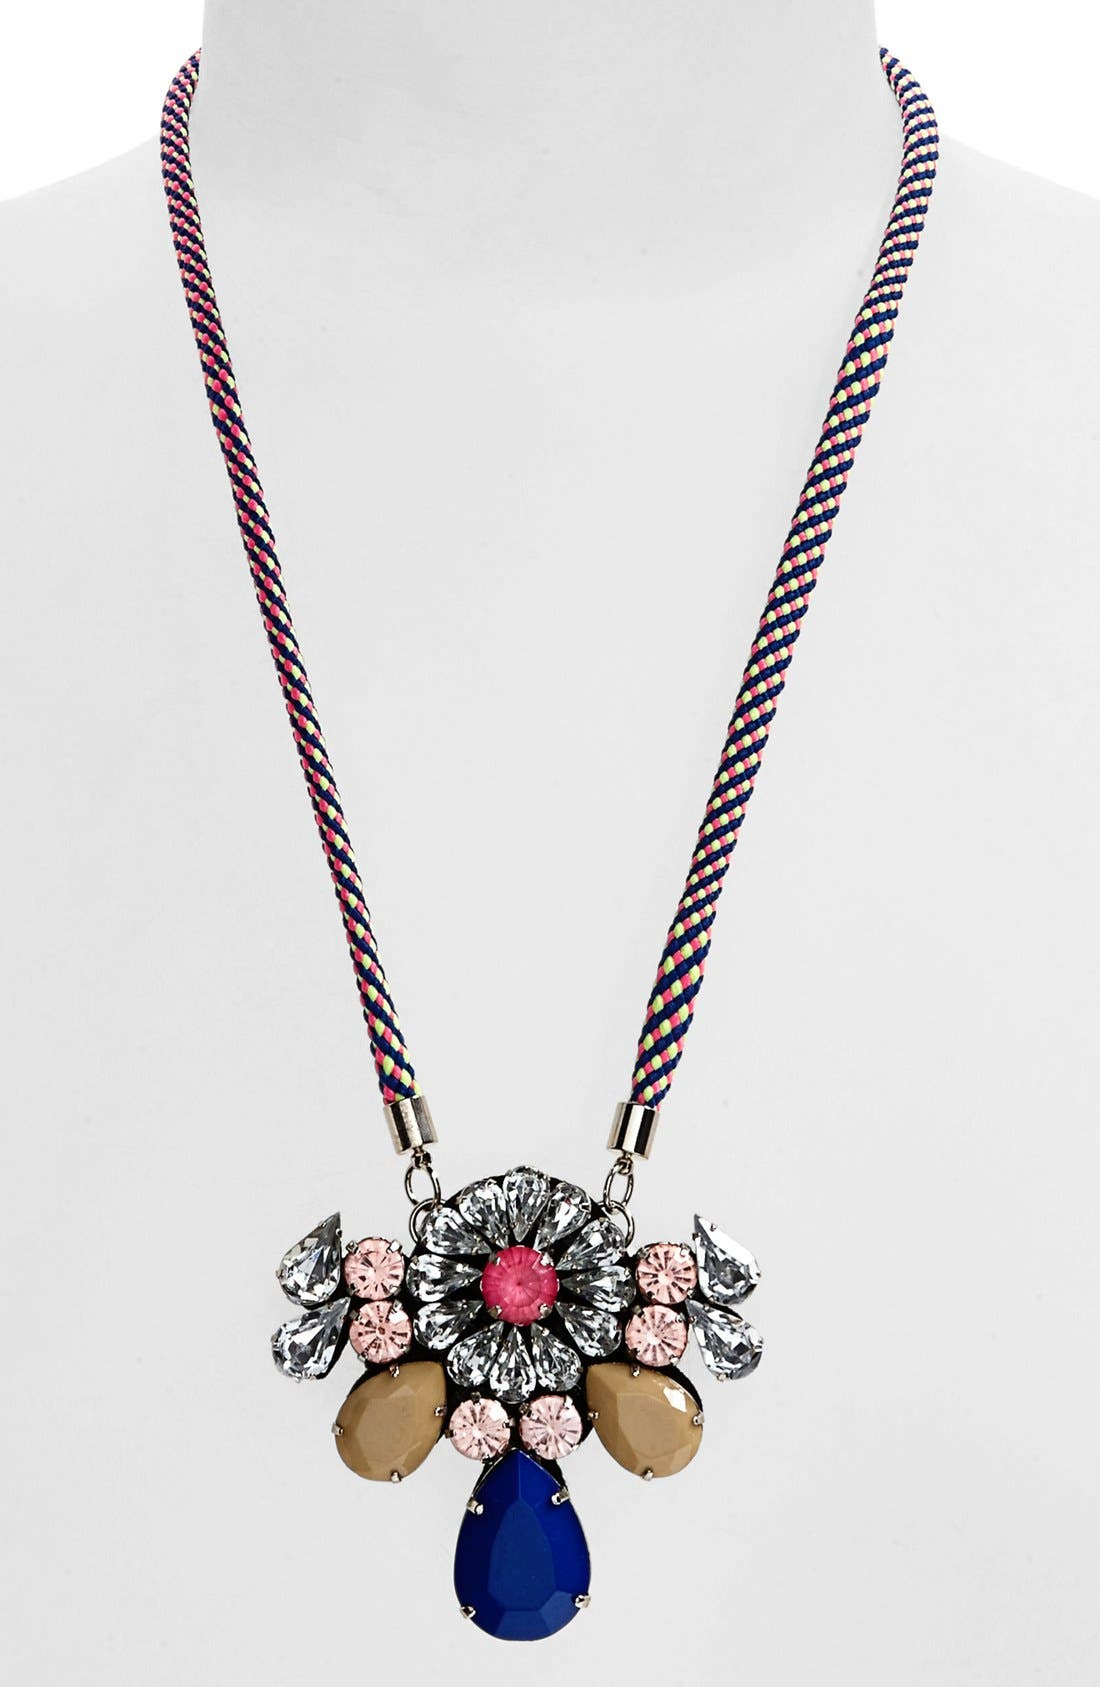 Main Image - Cara Couture 'Dandy' Statement Necklace